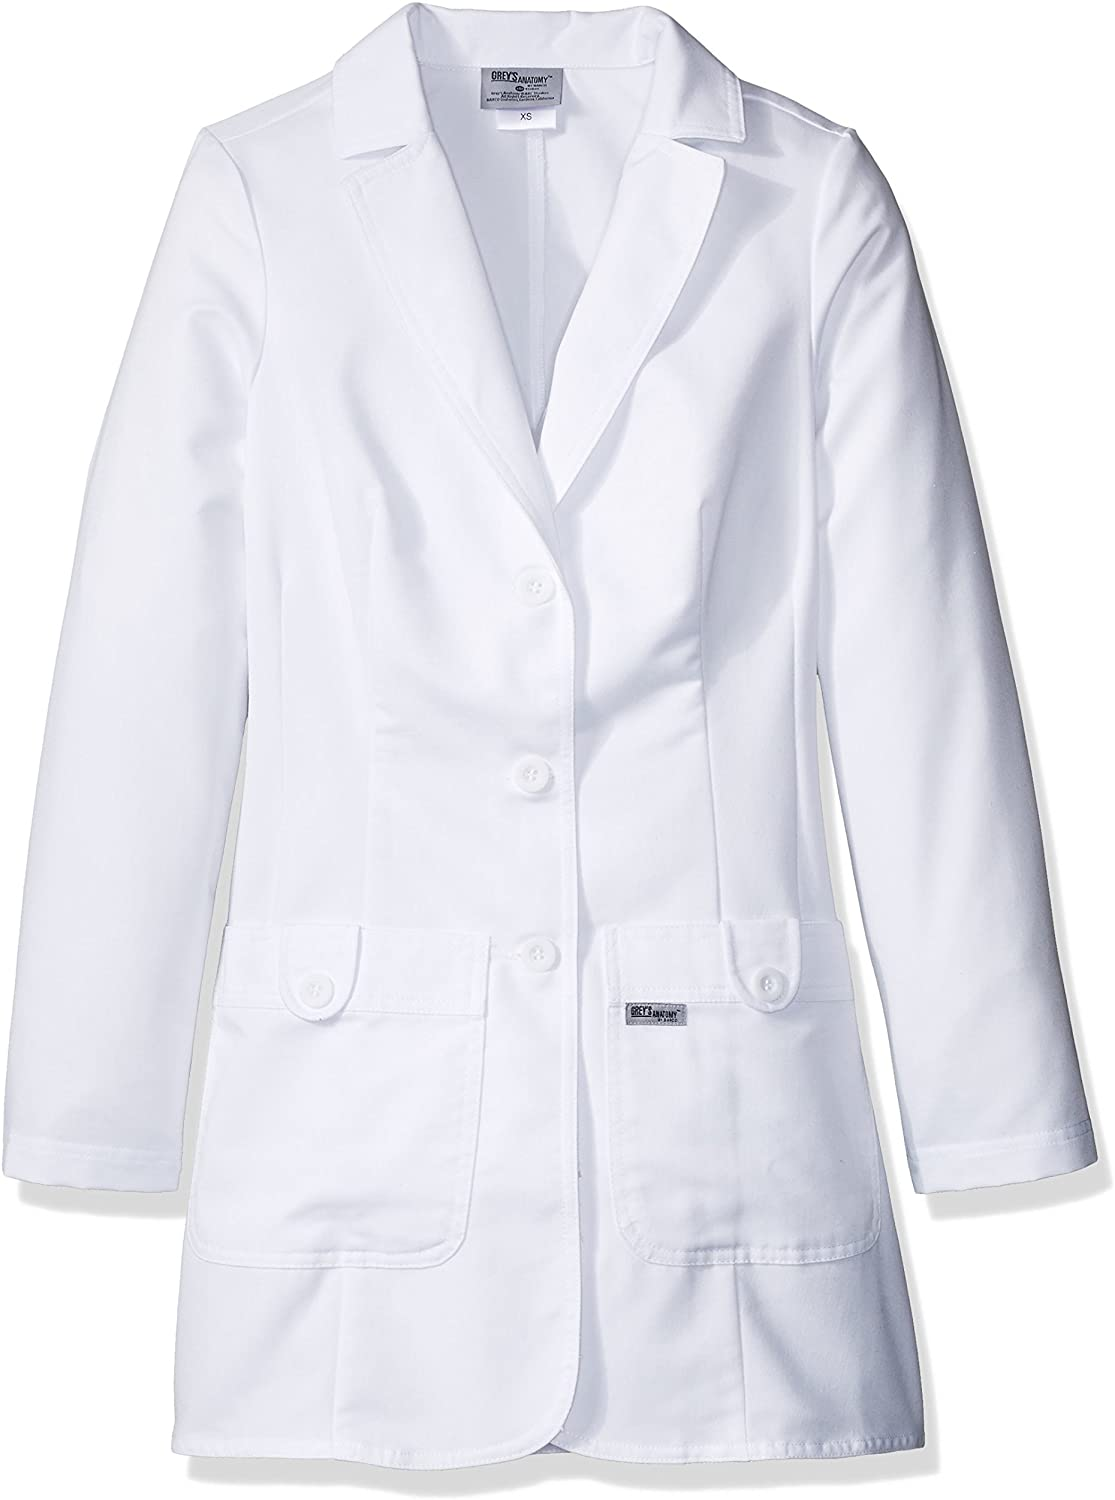 Grey's Anatomy Women's 32 Inch Two Pocket Fitted Lab Coat: Clothing